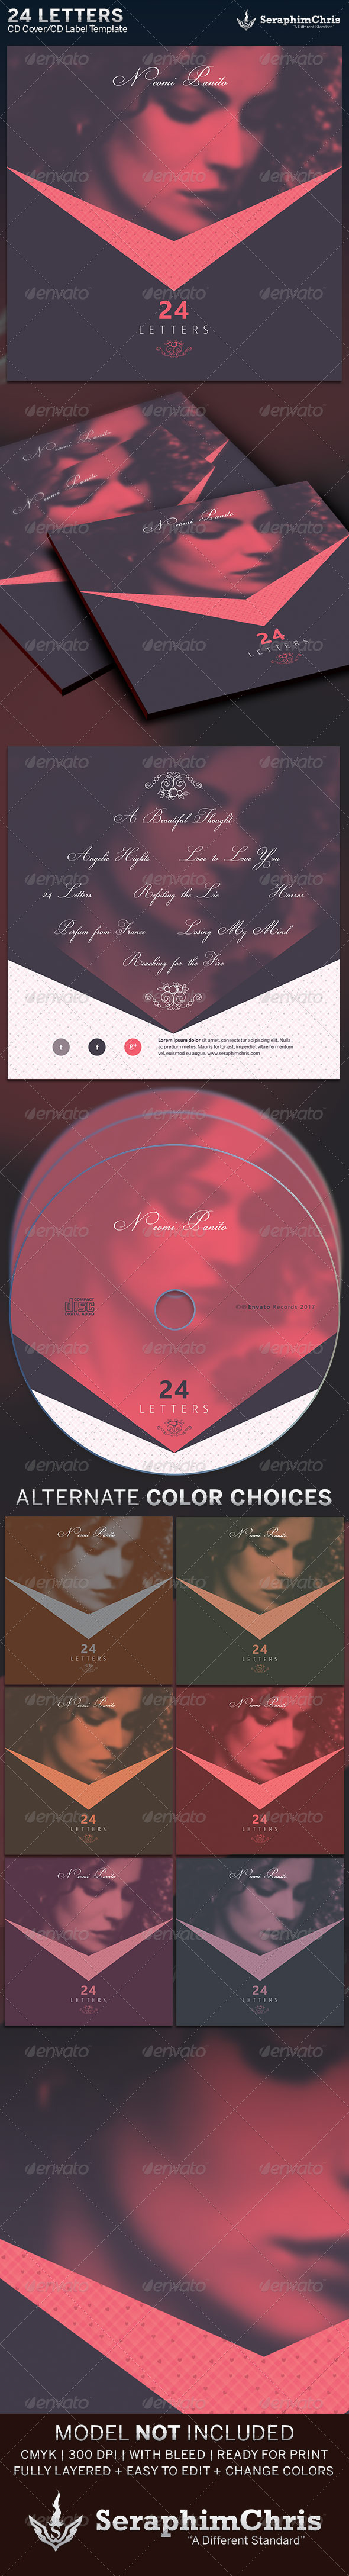 24 Letters: CD Cover Artwork Template - CD & DVD Artwork Print Templates